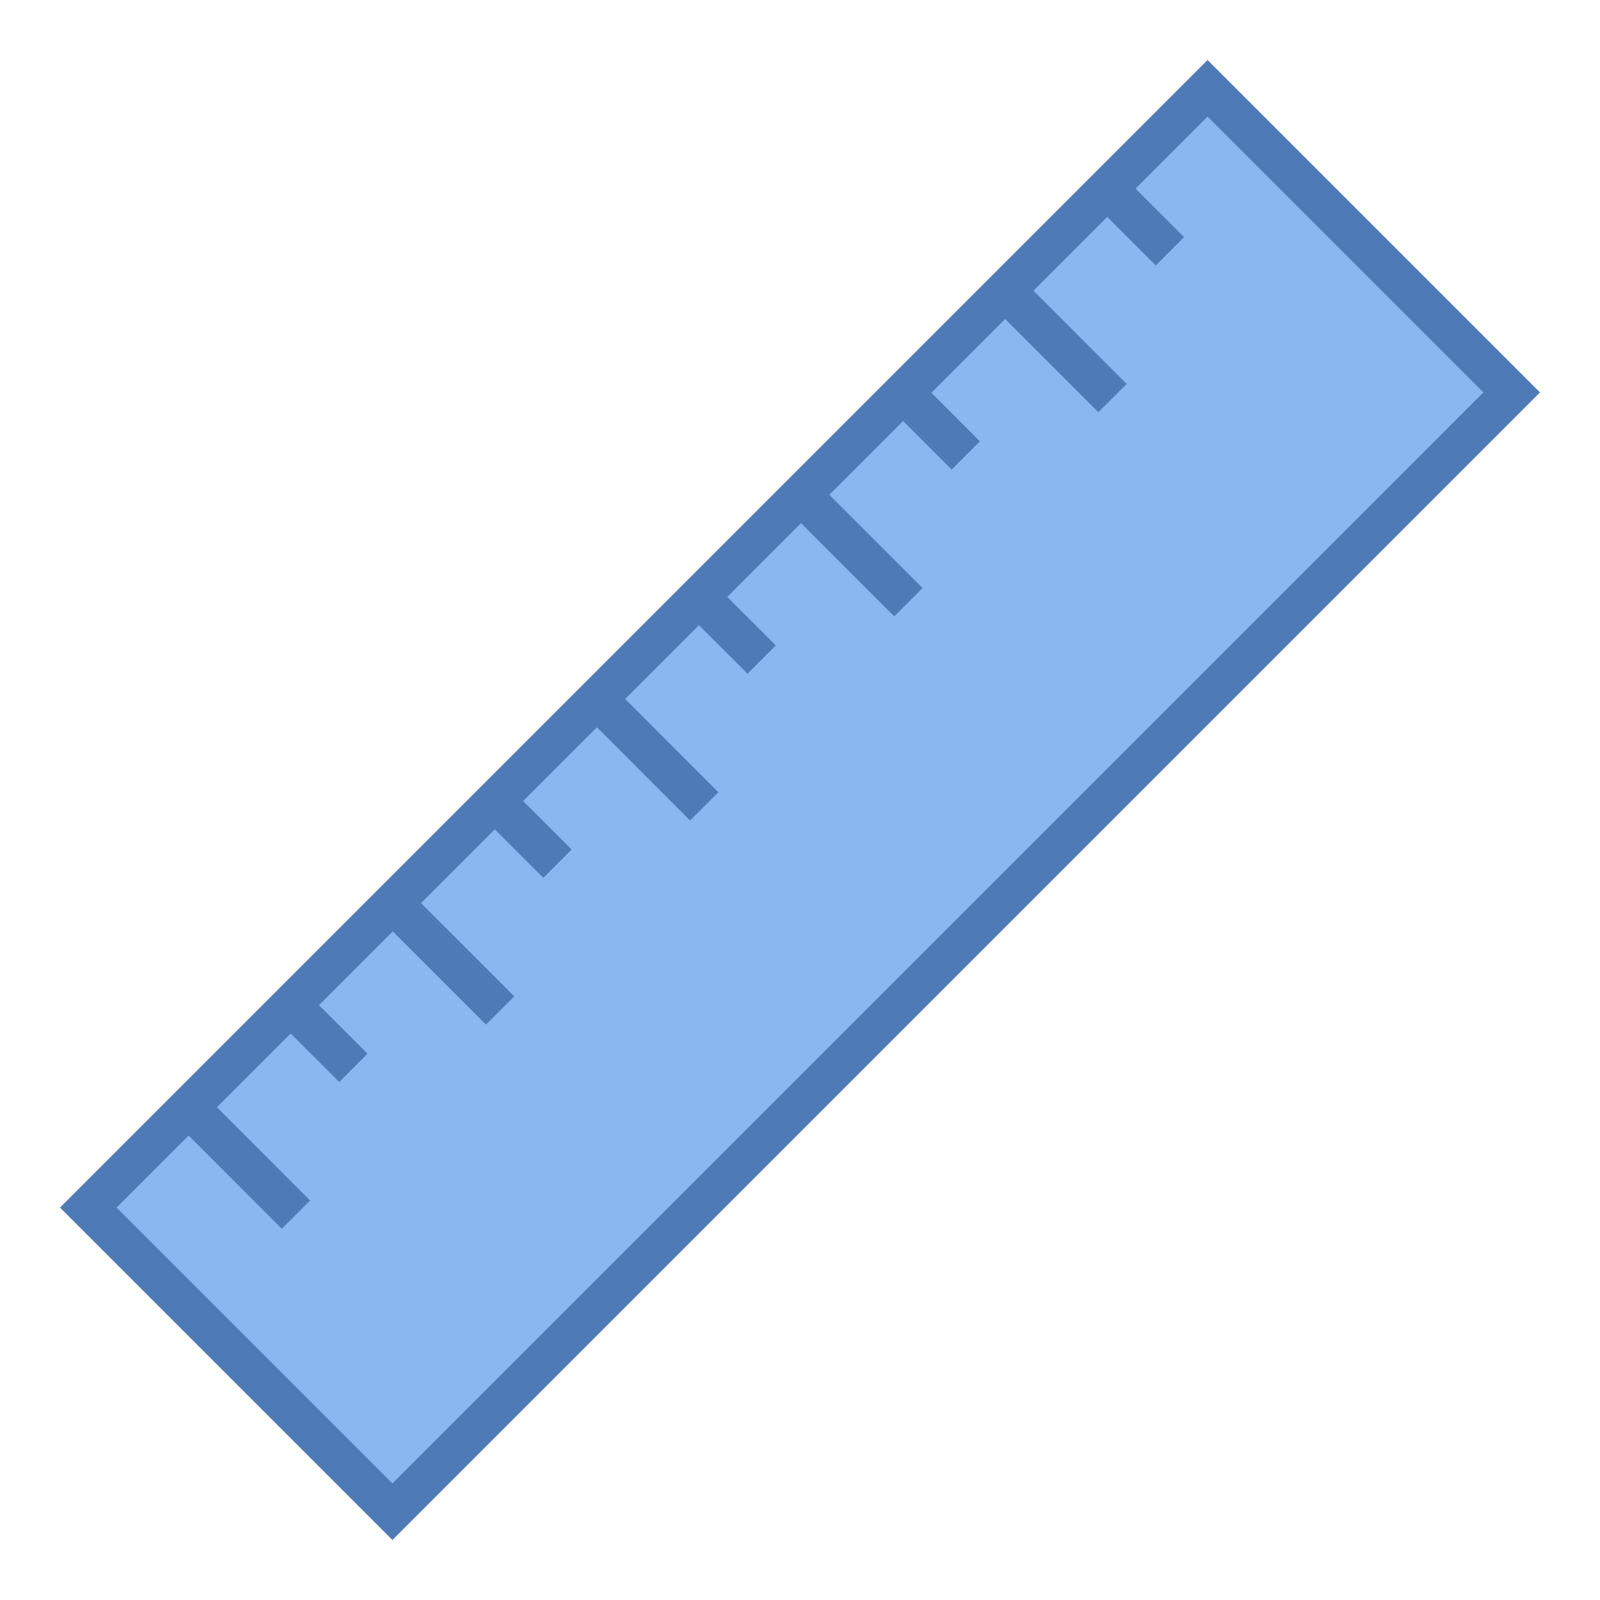 Ruler icon png